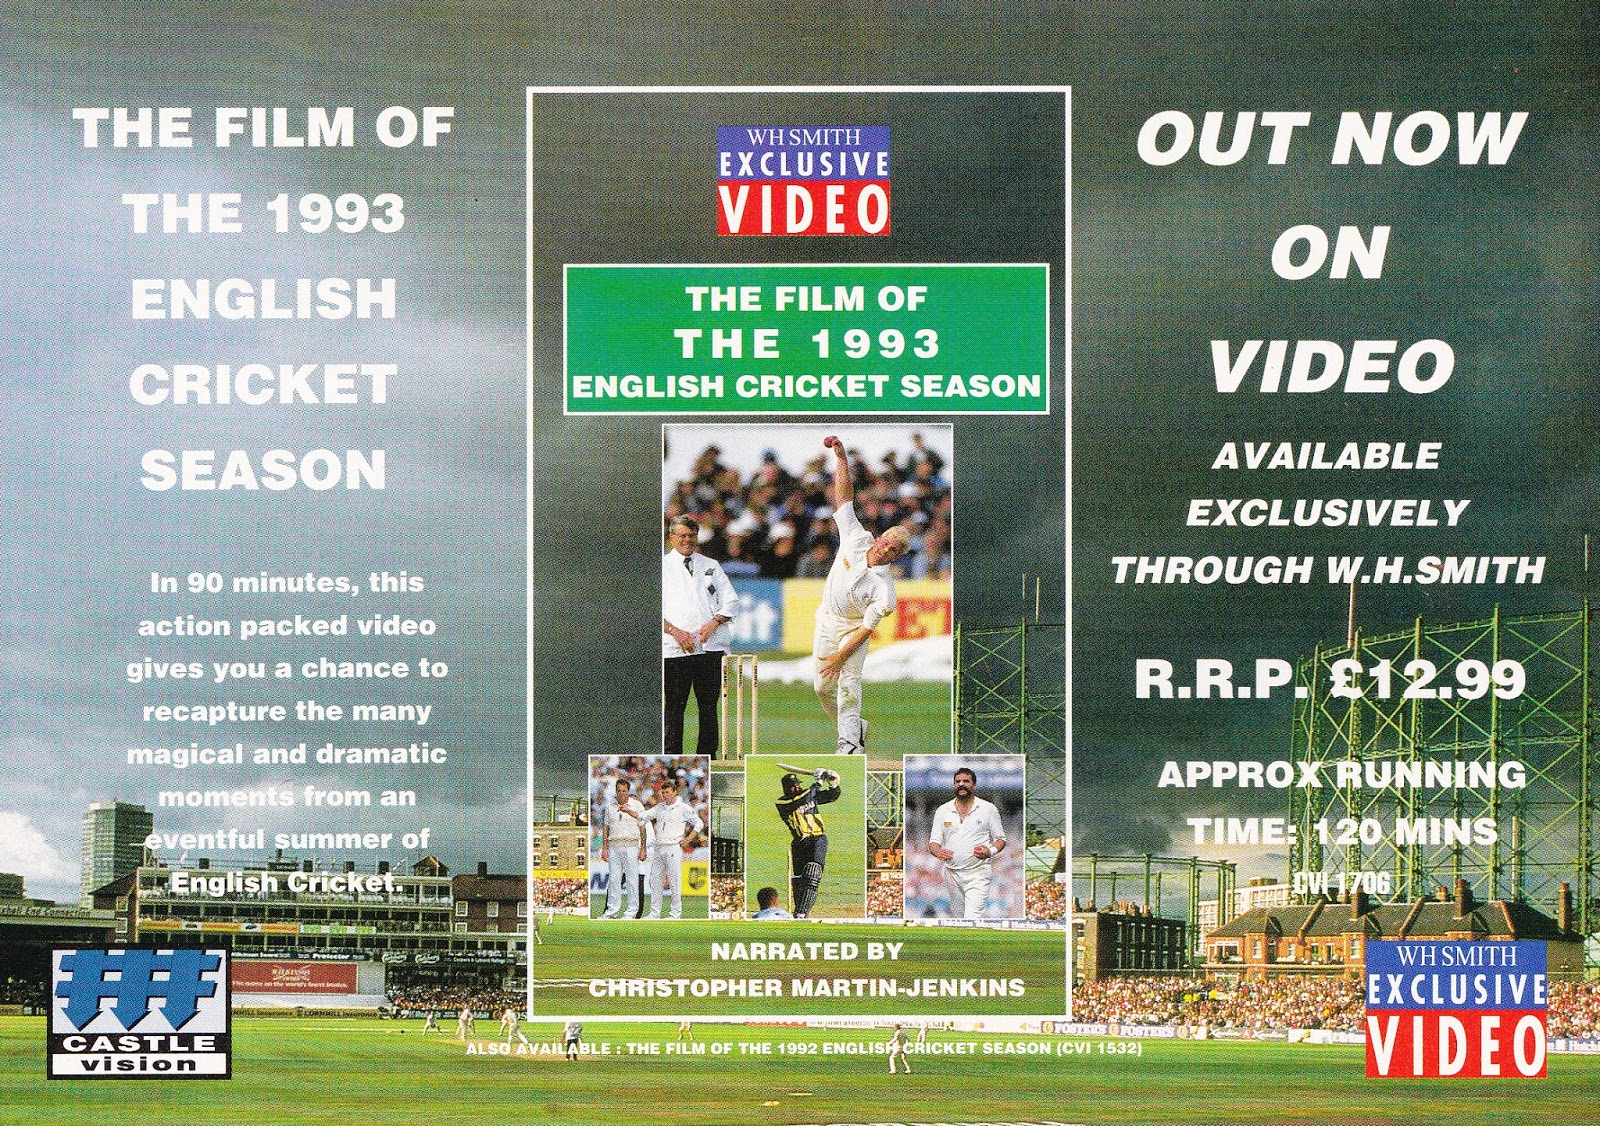 1993 English cricket season